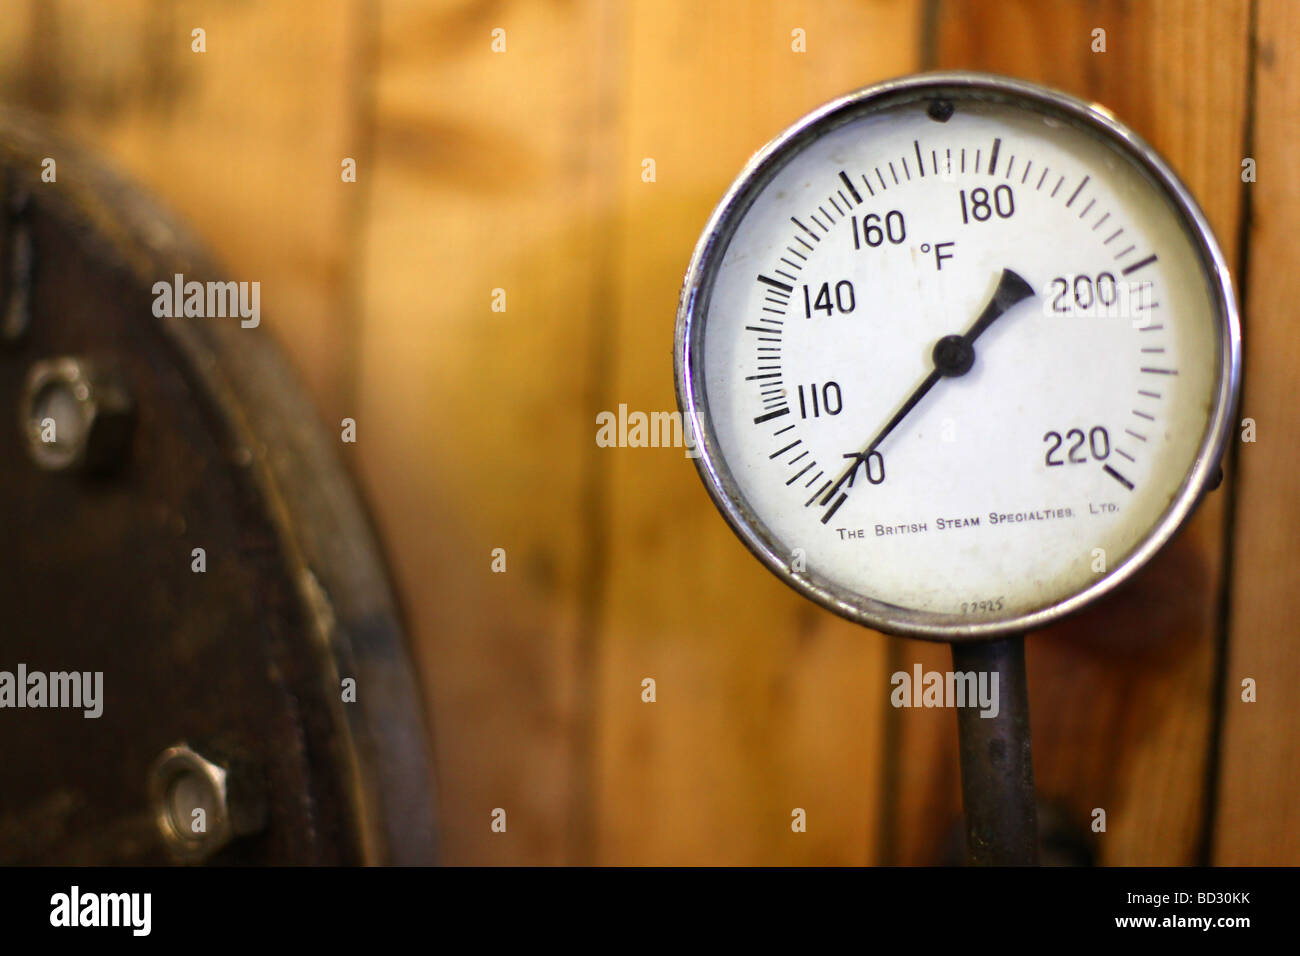 A pressure gauge on a vat of beer brewing in a brewery - Stock Image